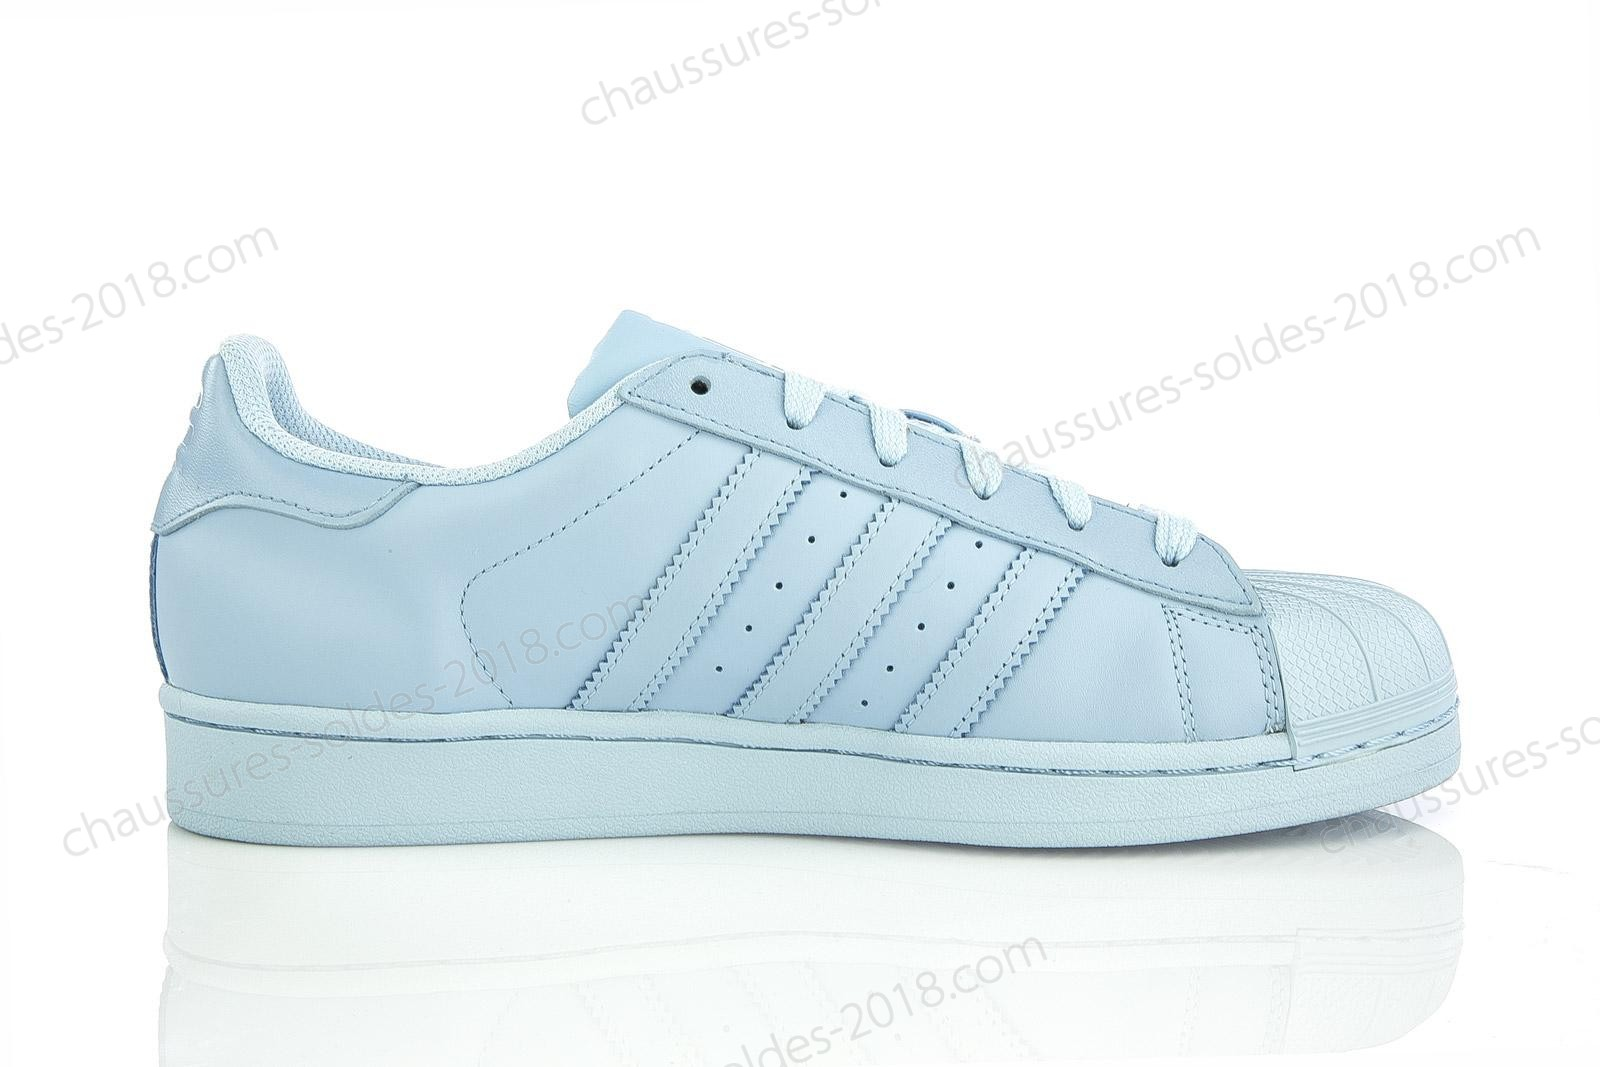 En Solde Adidas Superstar x Pharrell Williams Supercolor Basketball Chaussures in Clear Sky/Clear Sky/Clear Sky (S41830) Meilleure qualité - En Solde Adidas Superstar x Pharrell Williams Supercolor Basketball Chaussures in Clear Sky/Clear Sky/Clear Sky (S41830) Meilleure qualité-31